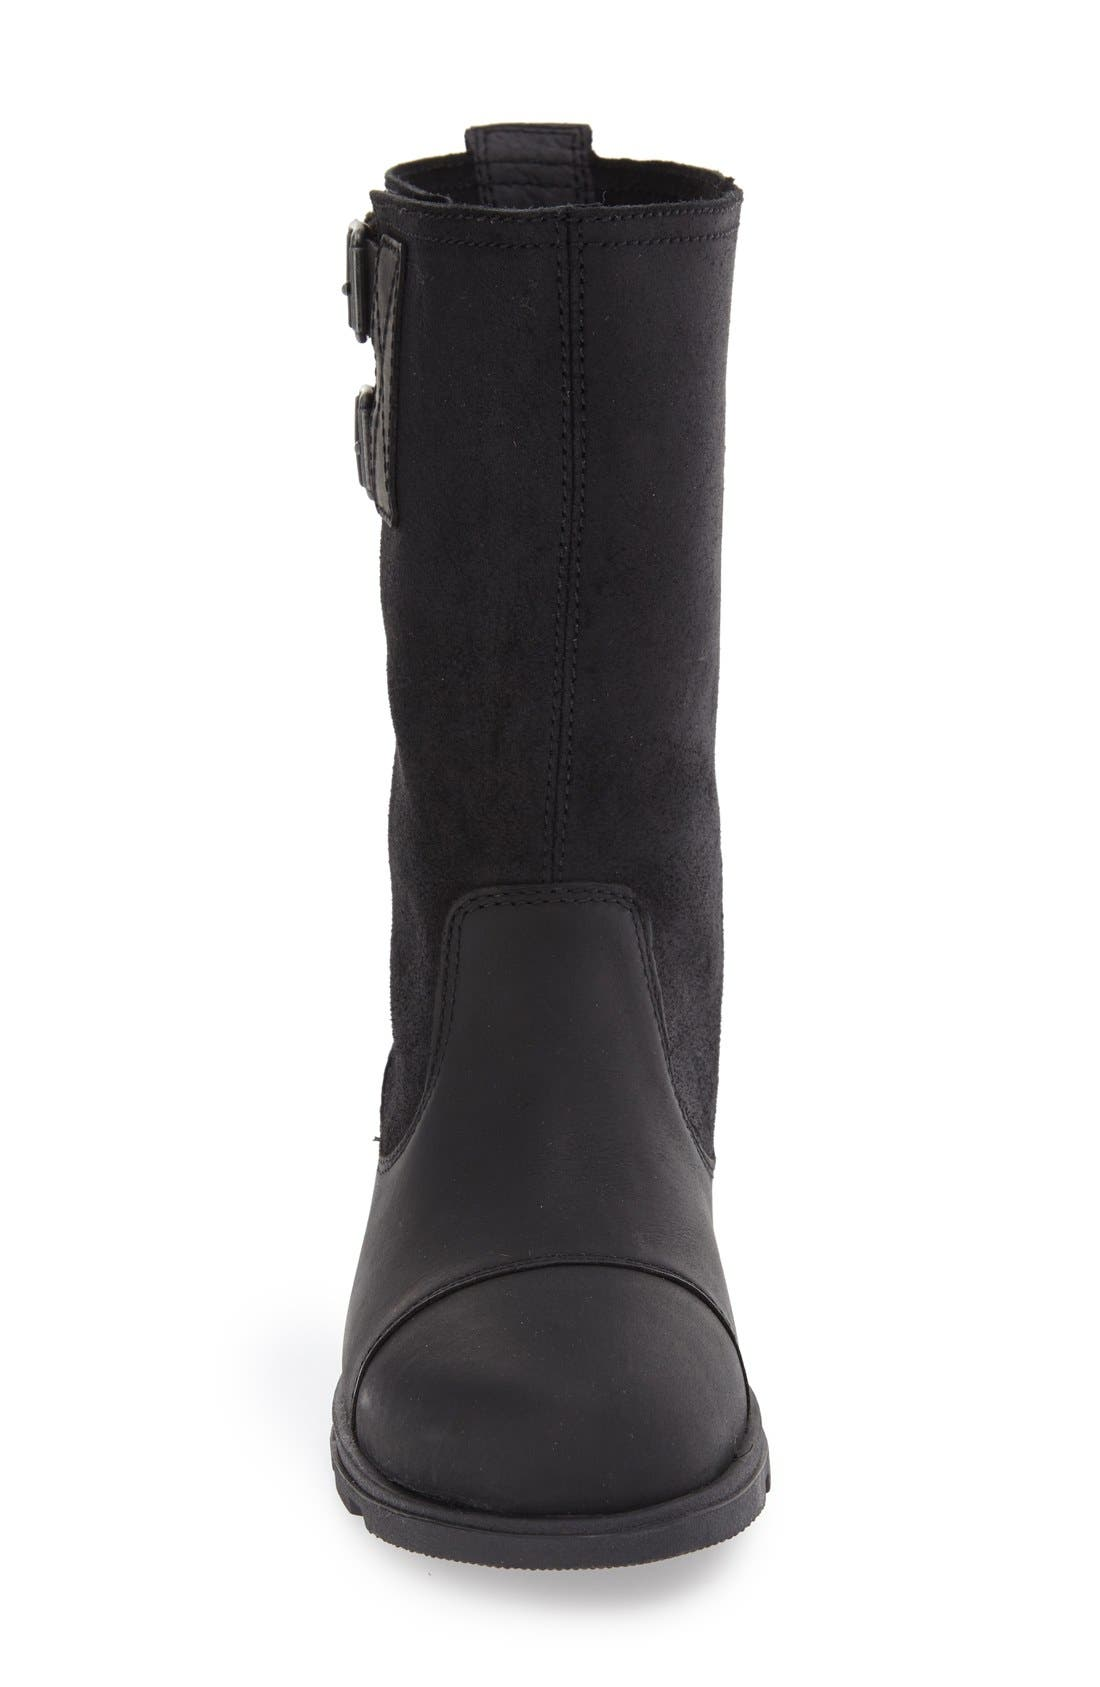 Alternate Image 3  - SOREL 'Major' Boot (Women)